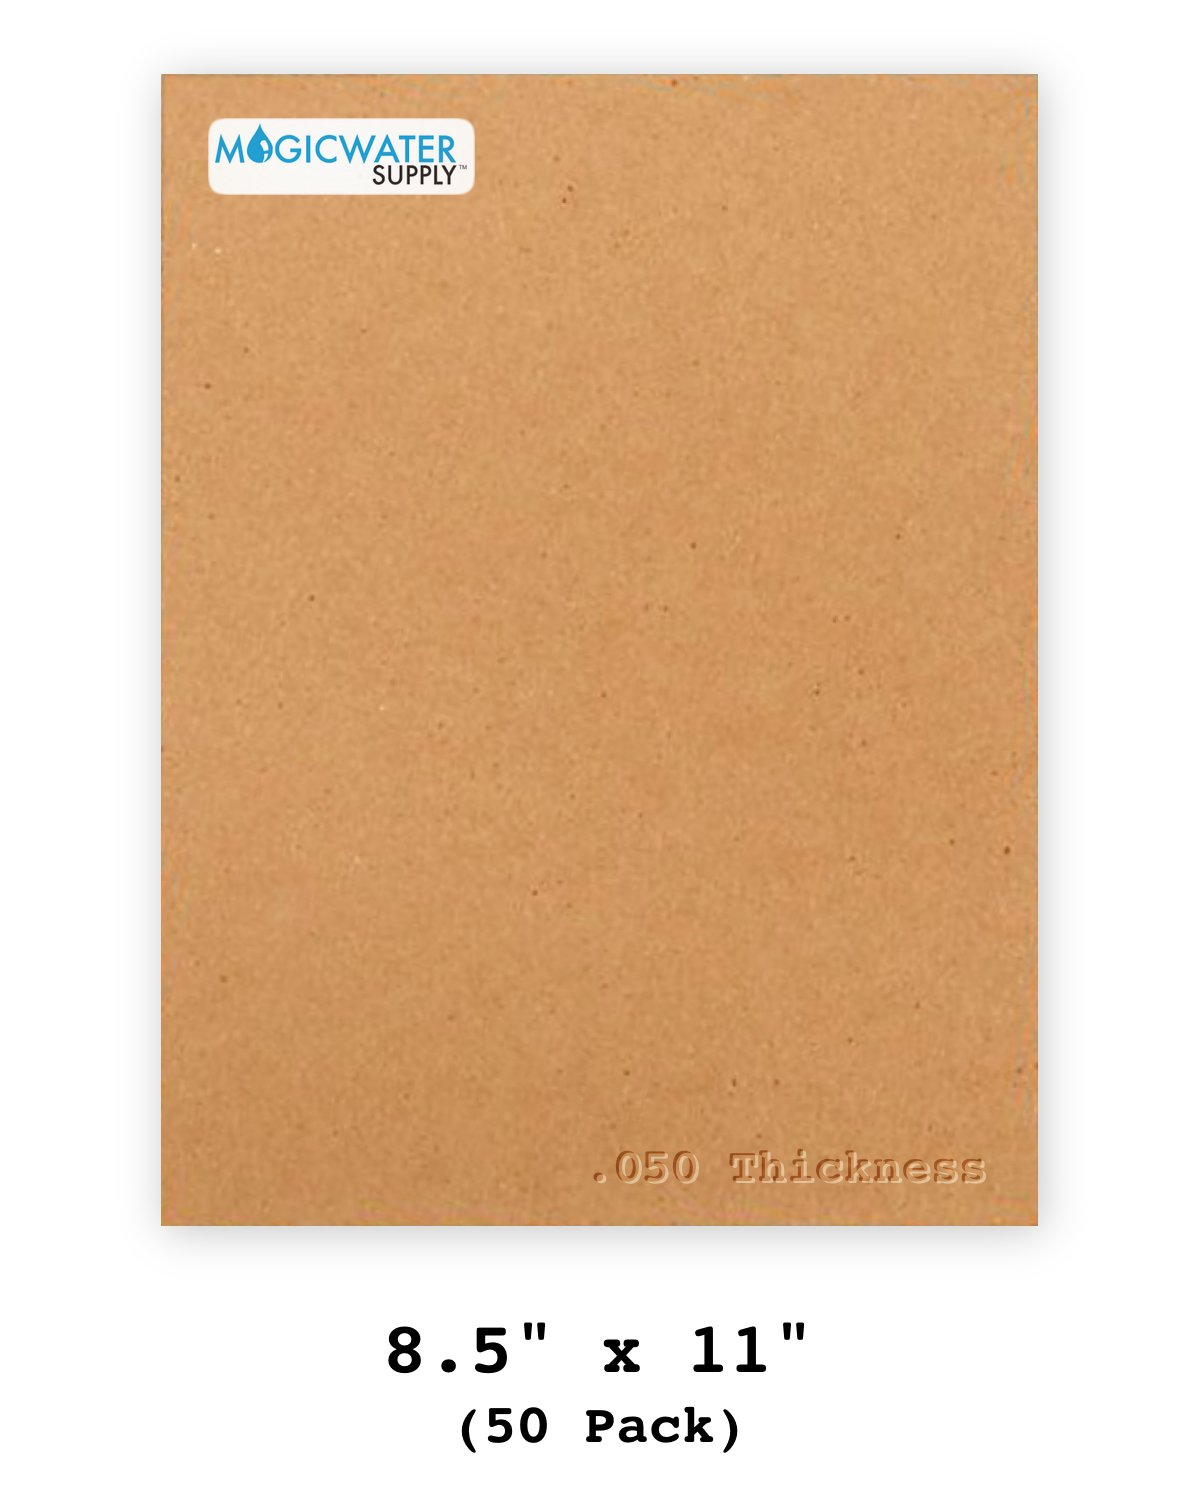 50 Chipboard Sheets 8.5 x 11 inch - 50pt (Point) Heavy Weight Brown Kraft Cardboard for Scrapbooking & Picture Frame Backing (.050 Caliper Thick) Paper Board | MagicWater Supply by MagicWater Supply